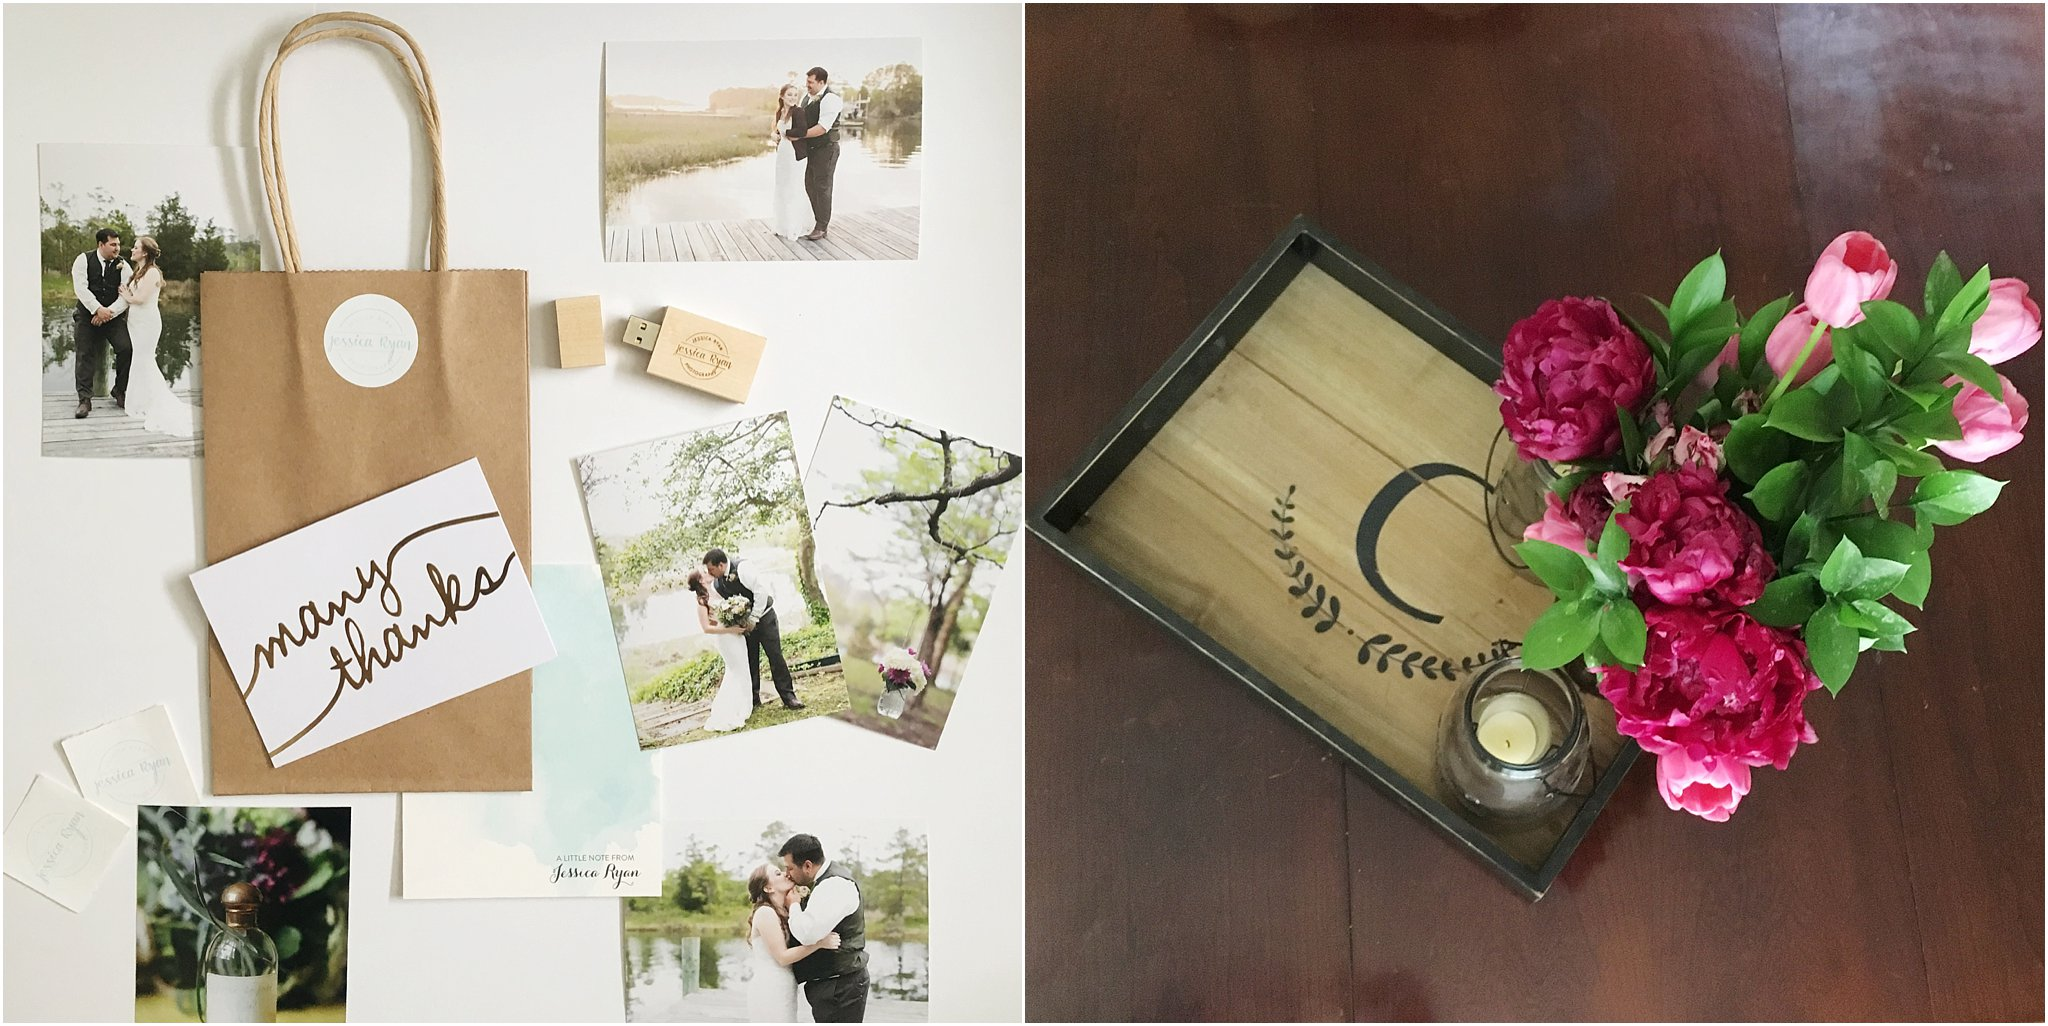 iphone photos of flowers and wedding photographer package